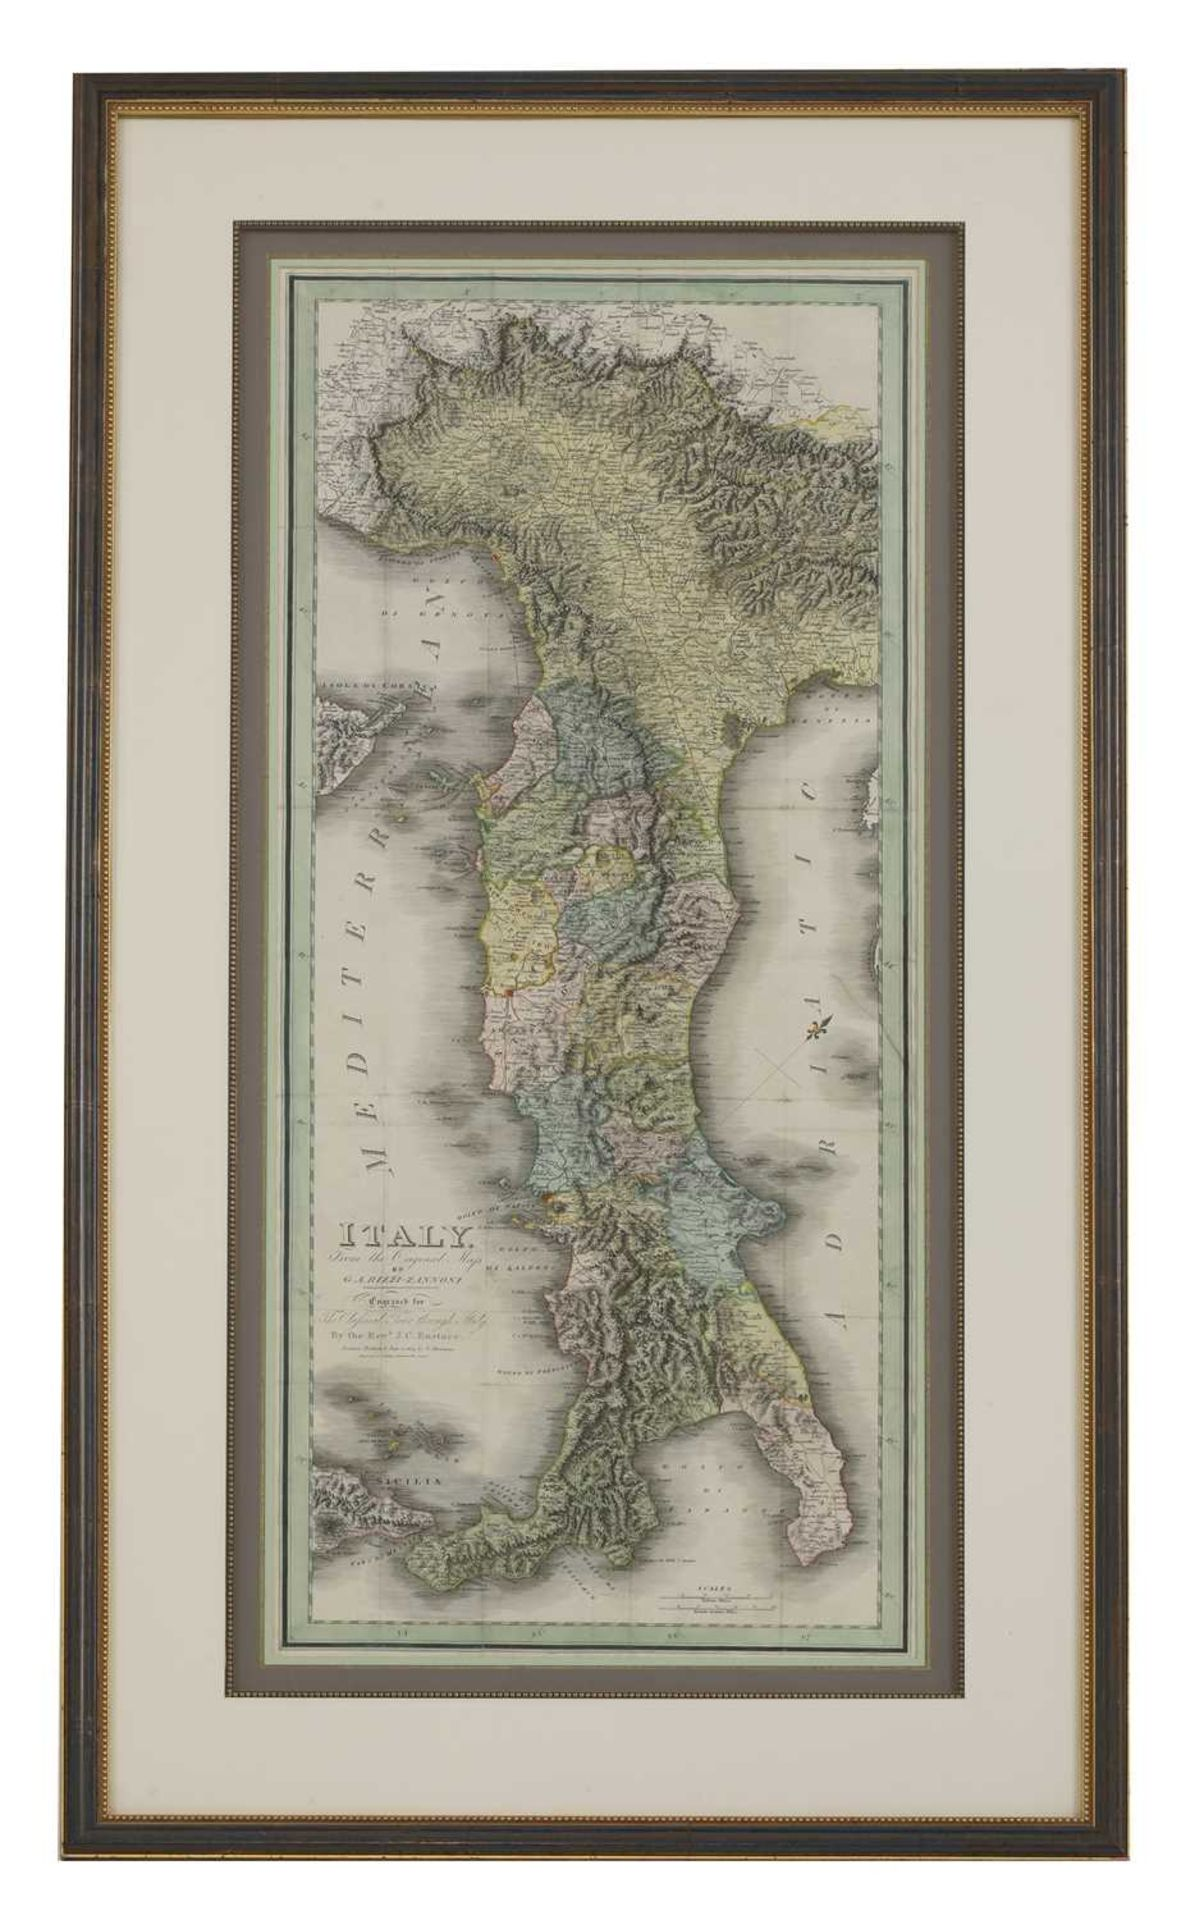 'Italy From The Original Map by G.A. Rizzi-Zannoni, - Image 2 of 3